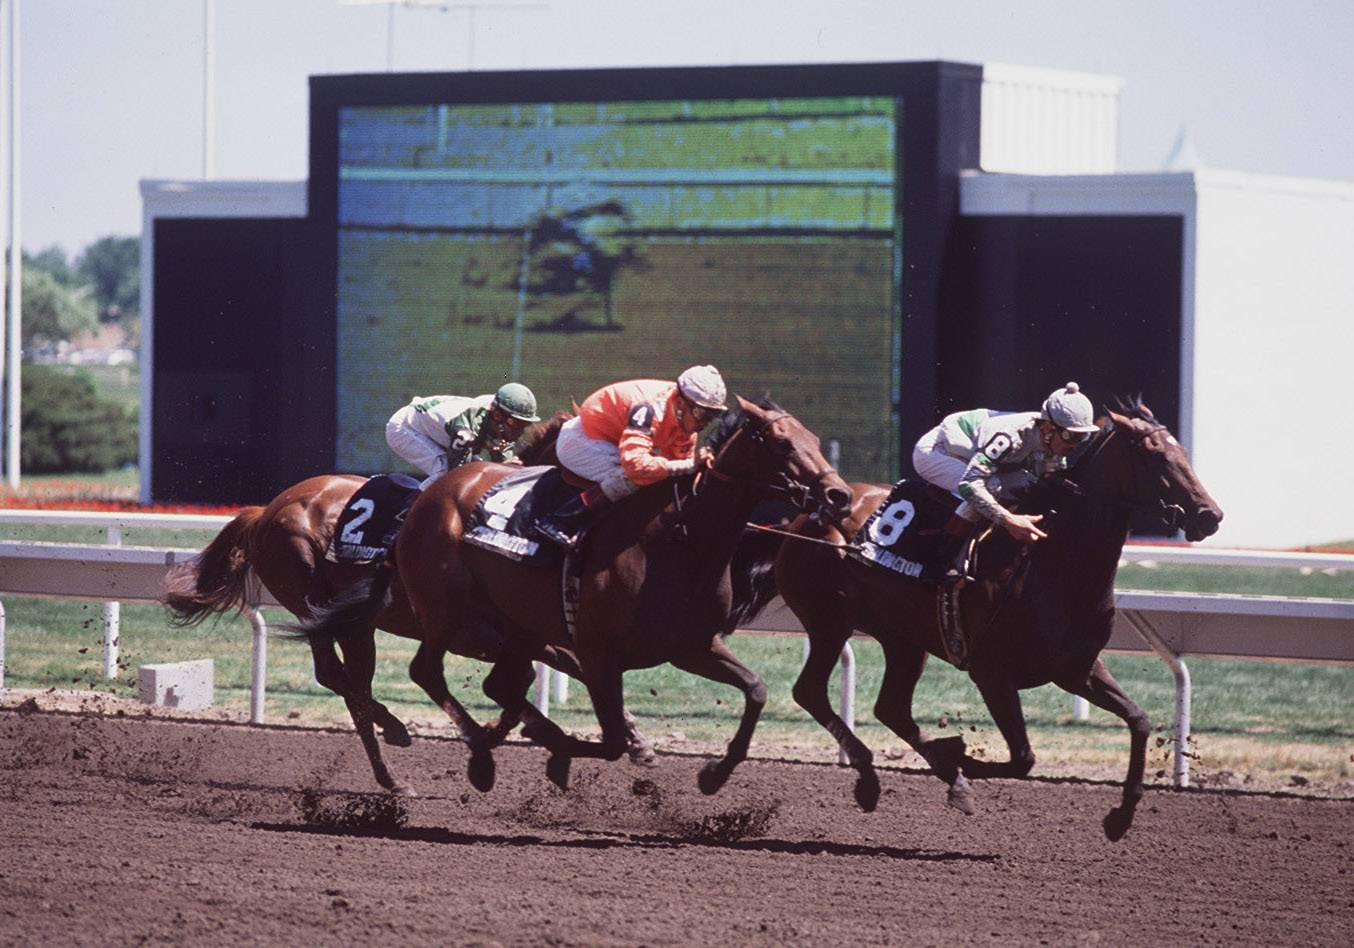 Horses race on the track on the grand opening of new Arlington International Racecourse in  July, 1989.